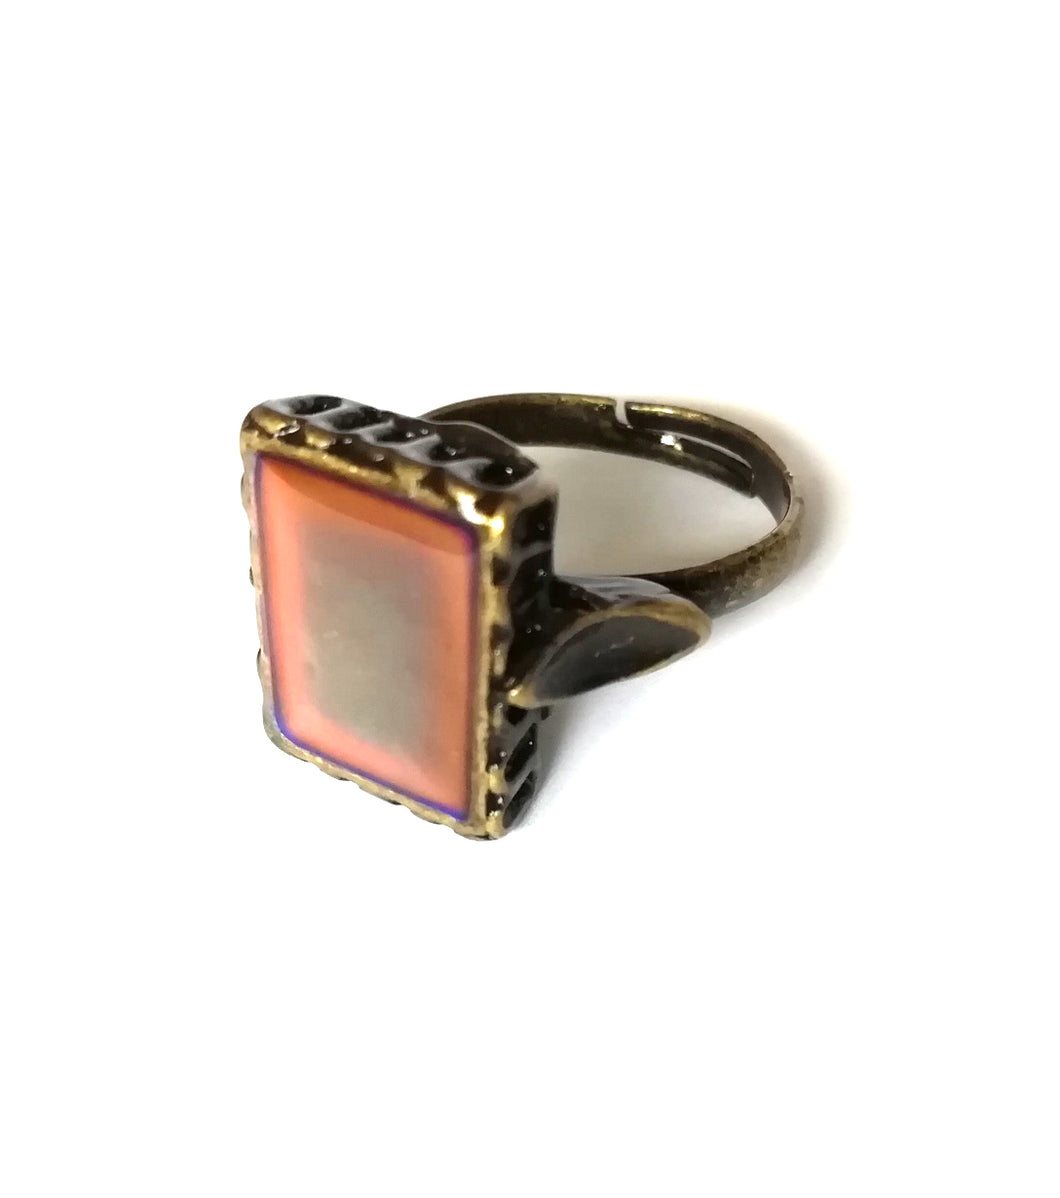 a bronze mood ring with a square mood and adjustable band